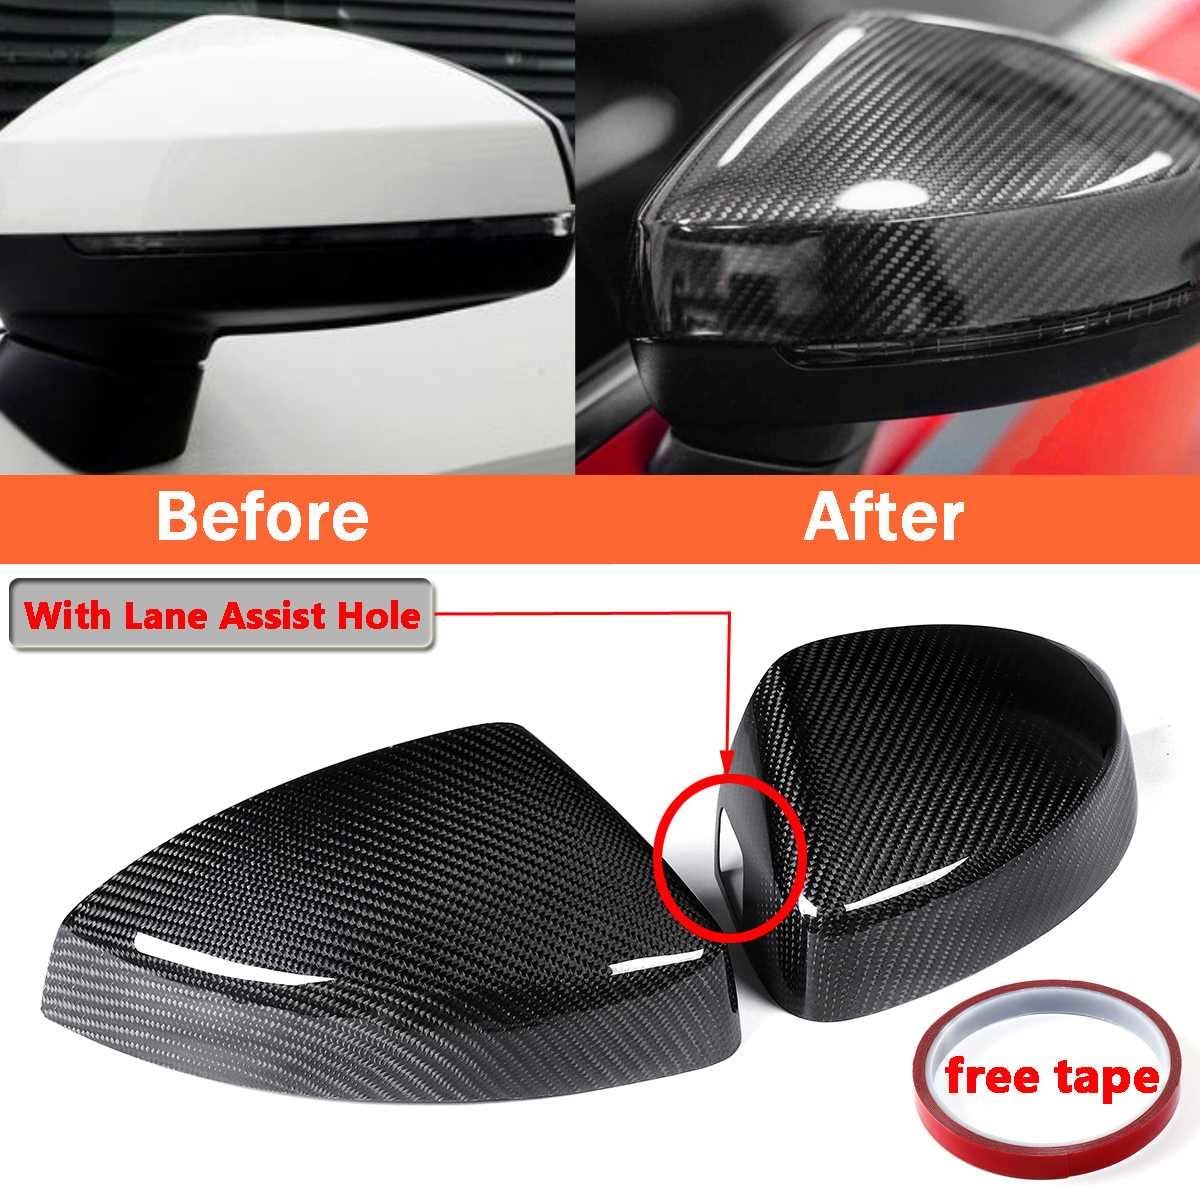 New 2x Add-on Car Side Mirror Covers For Audi A3/S3/RS3 Models 2014-2018 With Lane Assist Option Real Carbon Fiber